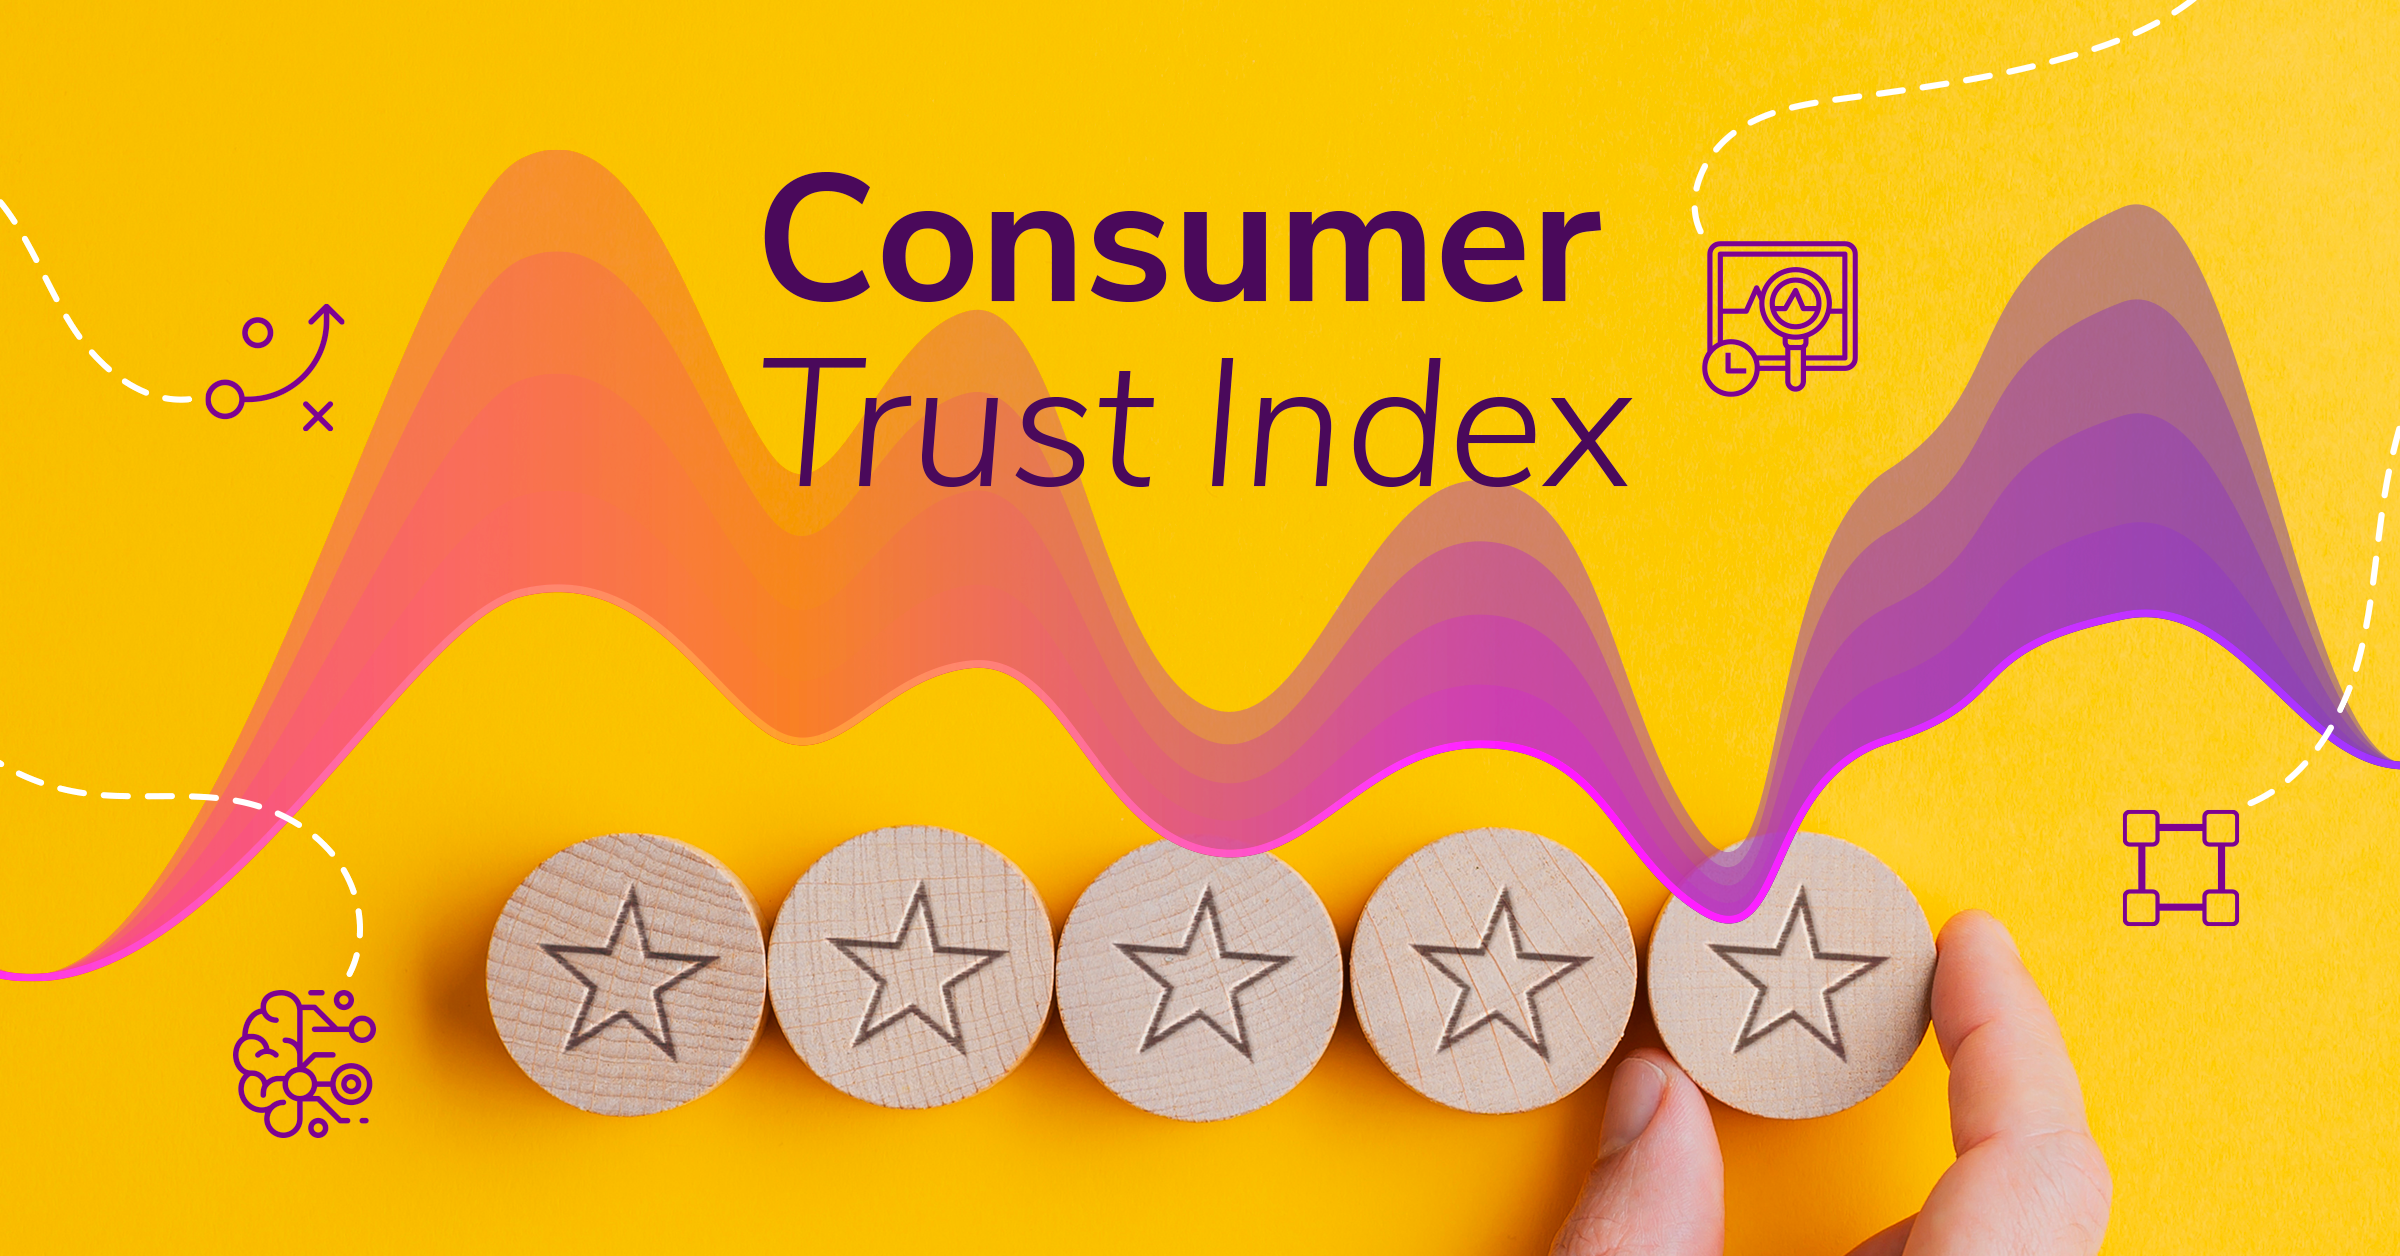 Consumer Trust Index launch